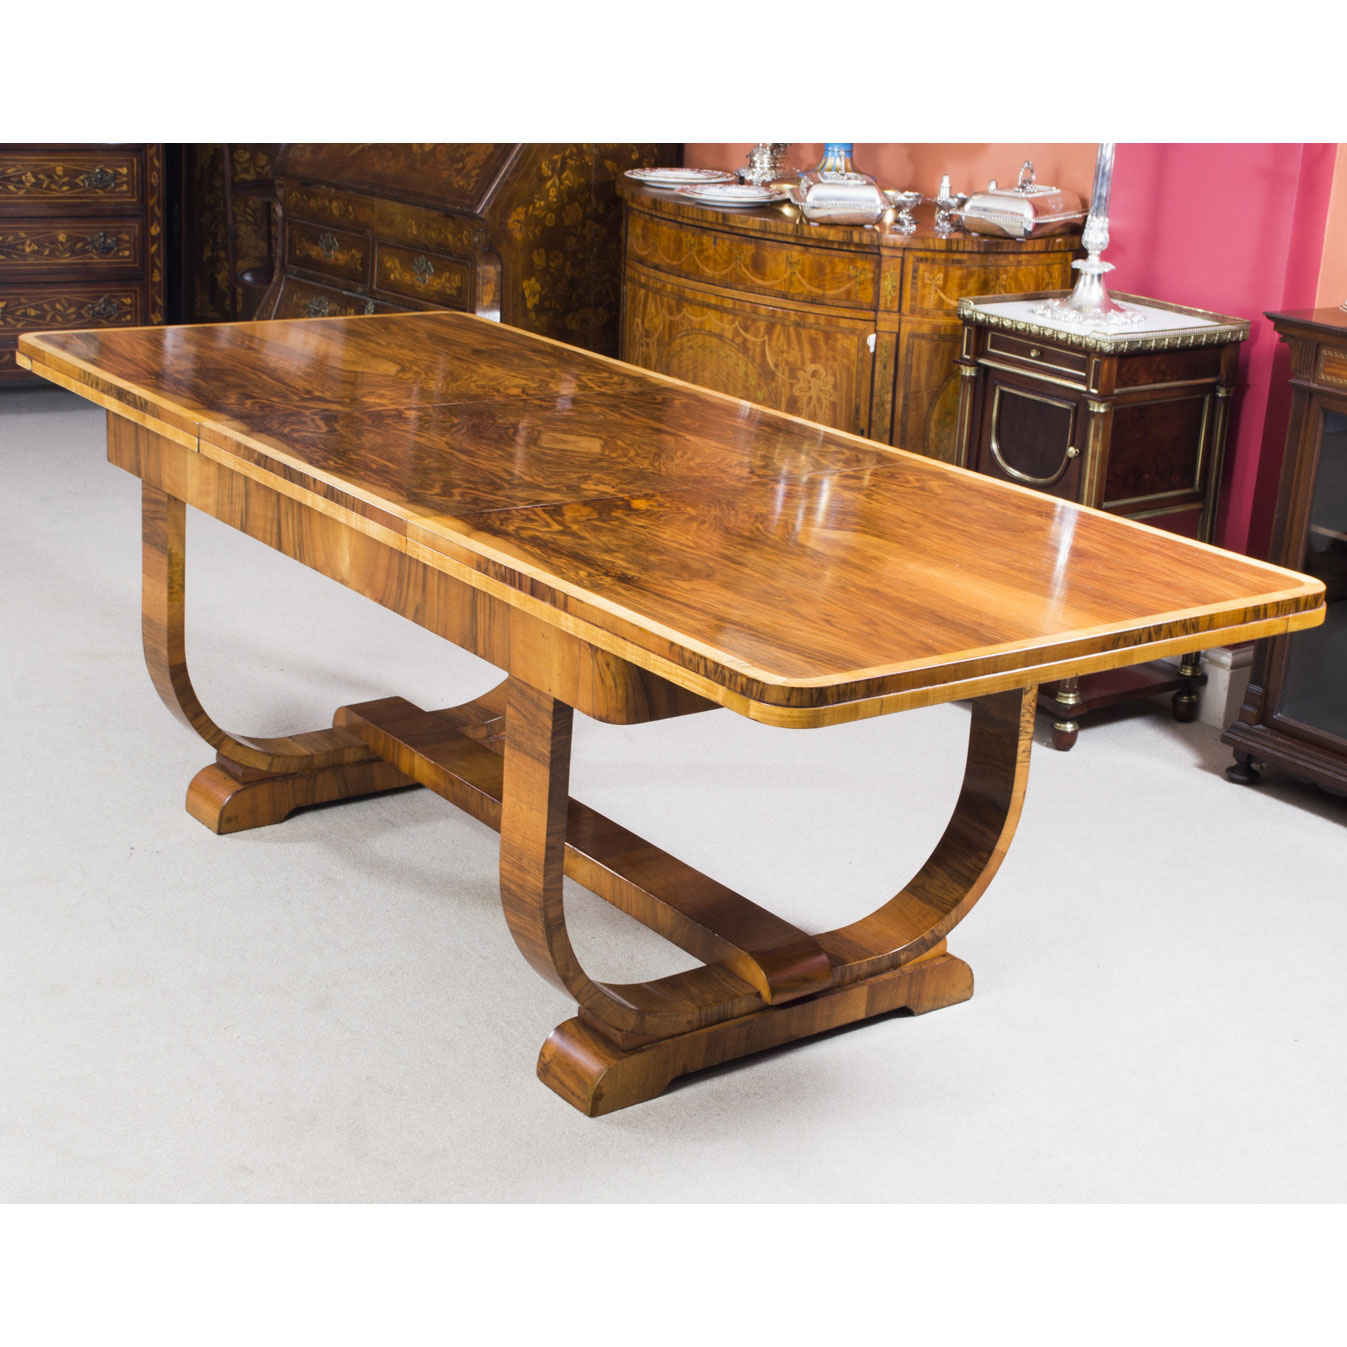 Antique Art Deco Furniture Walnut Dining Table